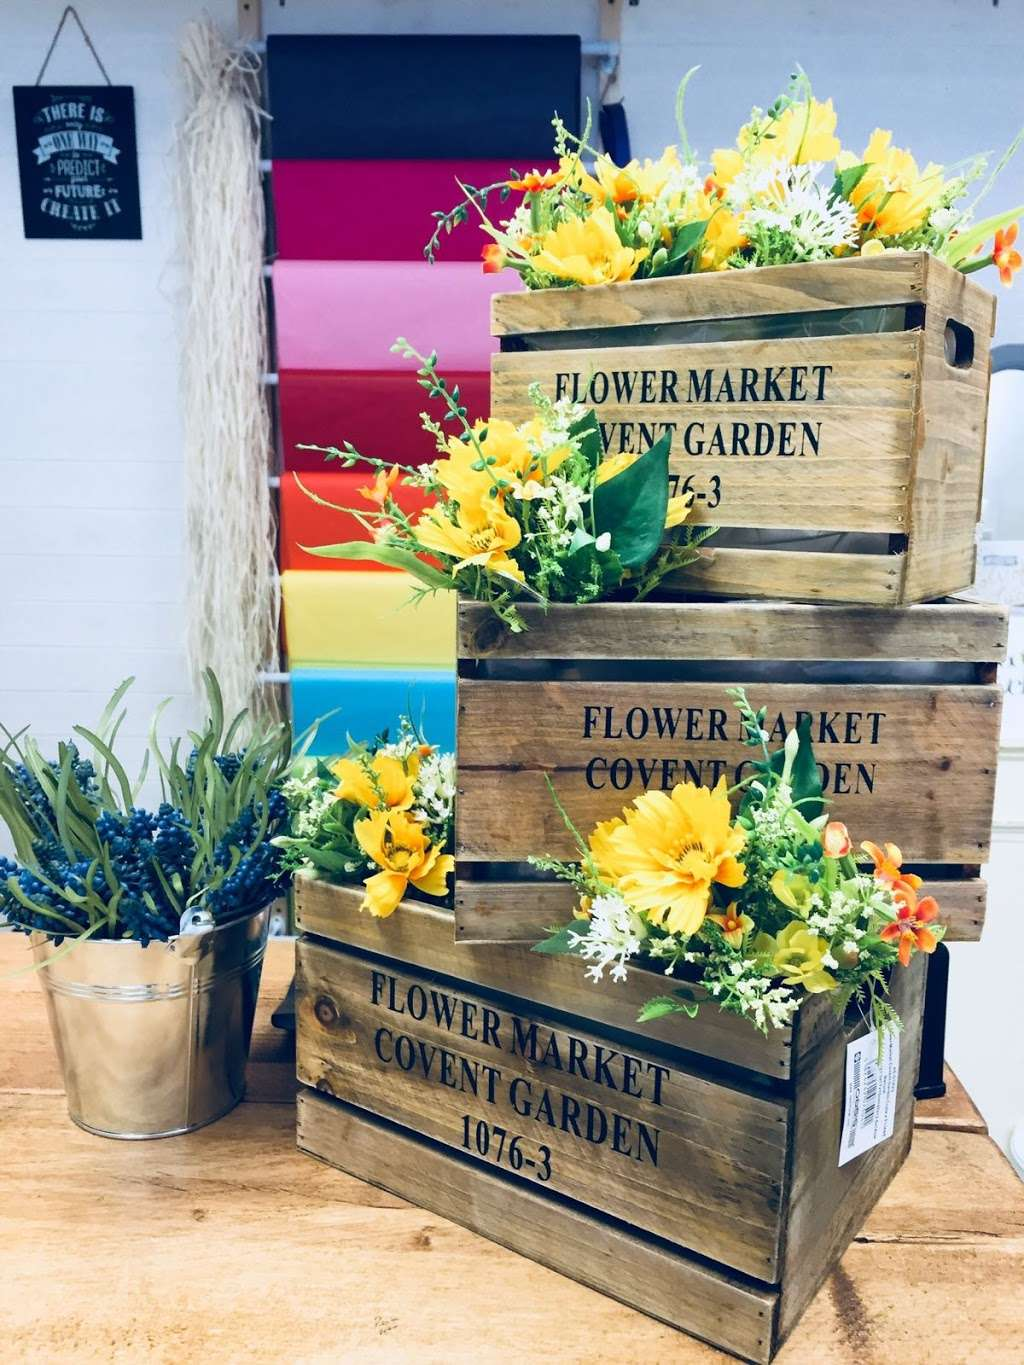 Coggers in Bloom - florist  | Photo 8 of 10 | Address: 849 Forest Rd, Walthamstow, London E17 4AT, UK | Phone: 020 8527 1051